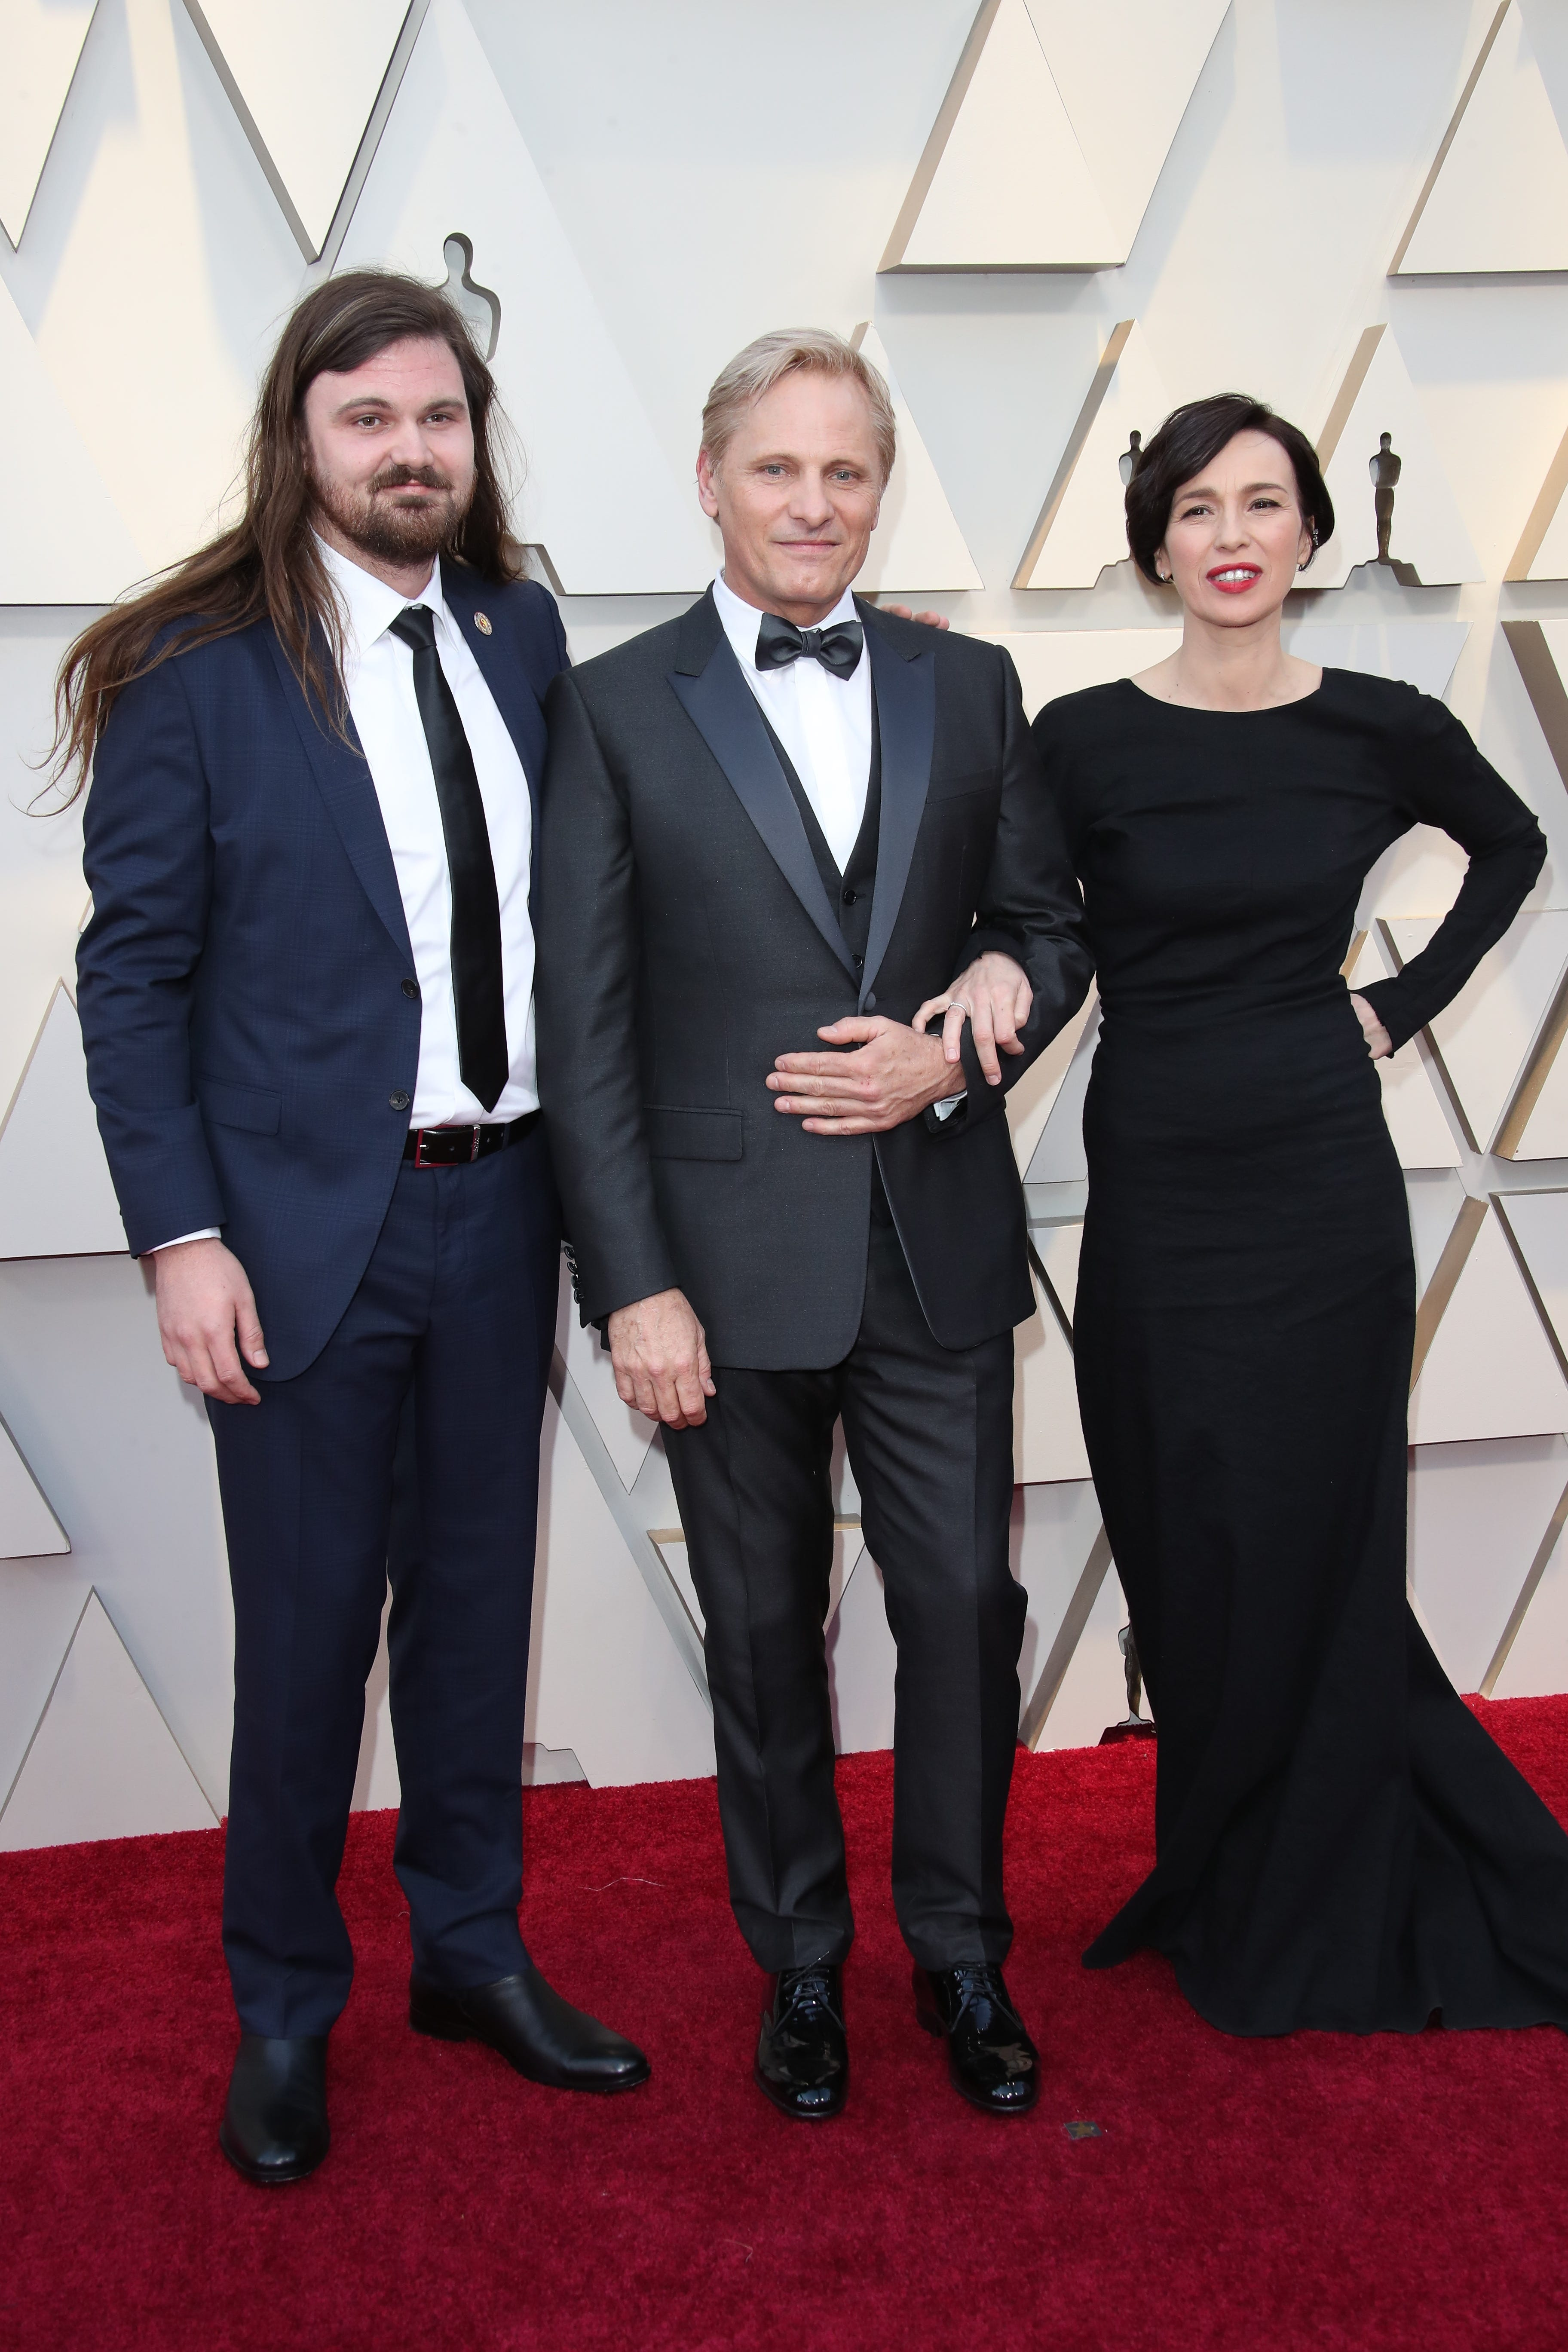 February 24, 2019; Los Angeles, CA, USA; Henry Mortensen, from left, Viggo Mortensen, and Ariadna Gil arrive at the 91st Academy Awards at the Dolby Theatre. Mandatory Credit: Dan MacMedan-USA TODAY NETWORK (Via OlyDrop)